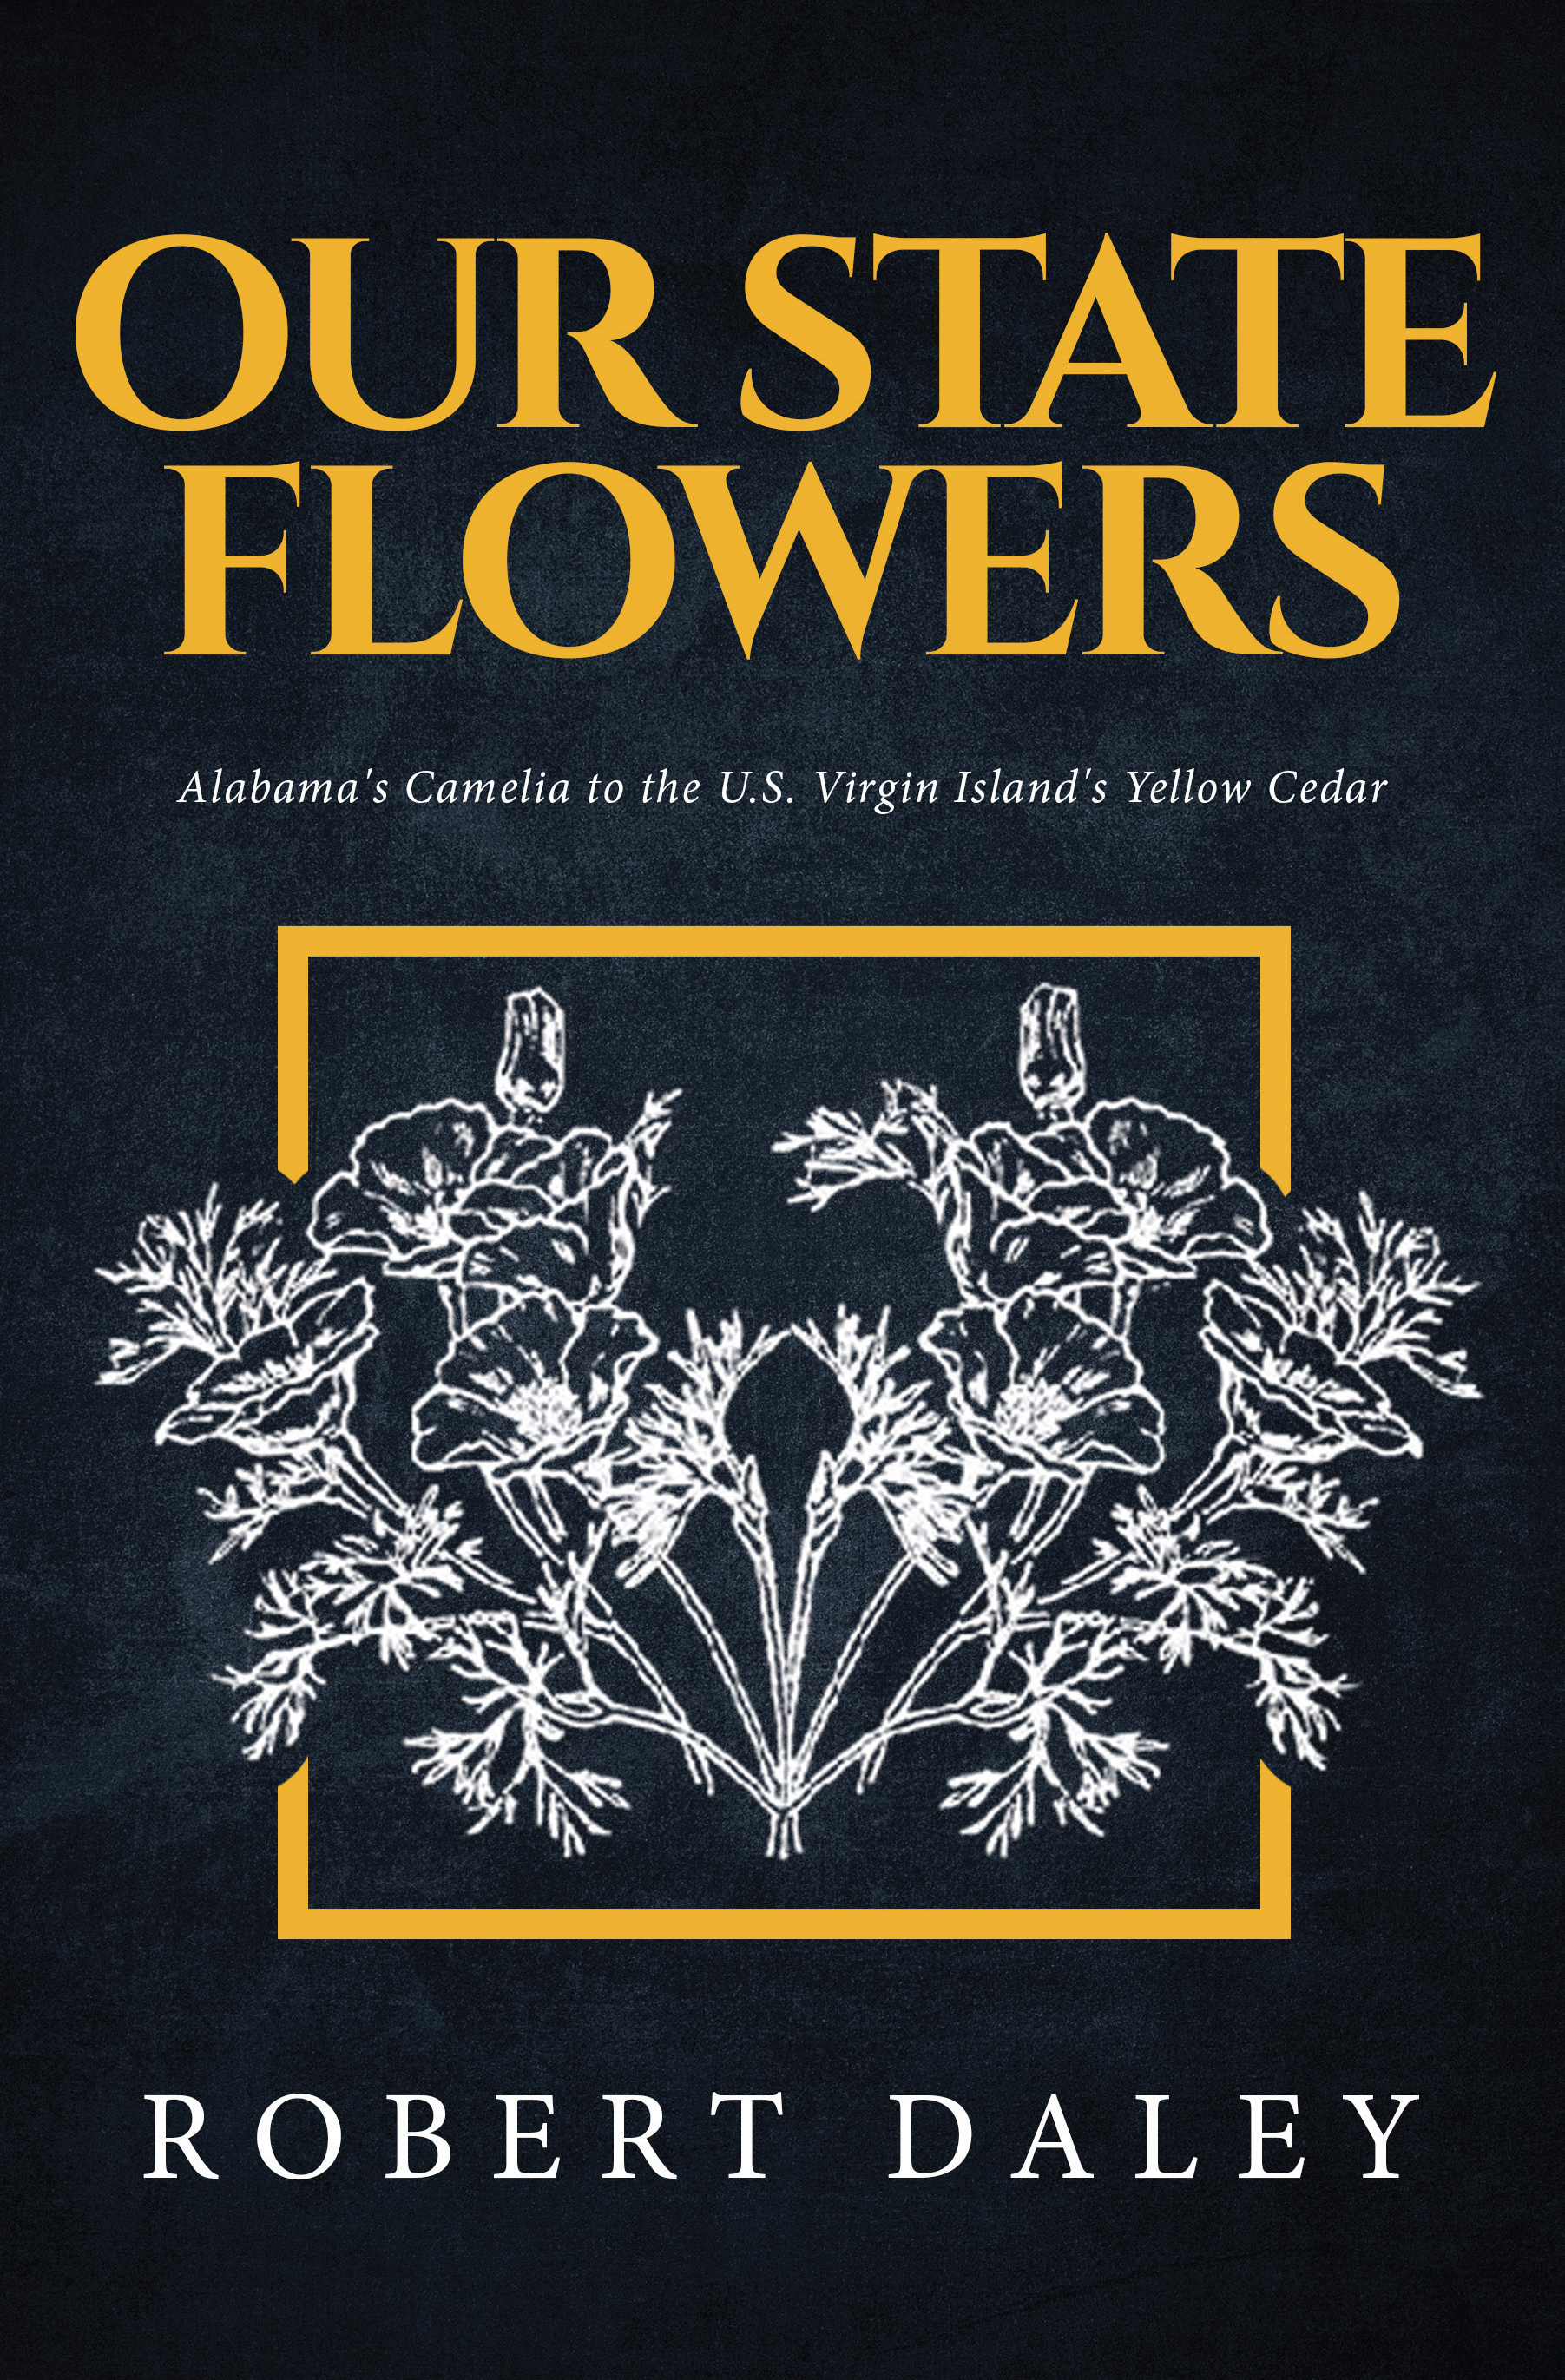 Our State Flowers: Alabama's Camelia to the U.S. Virgin Island's Yellow Cedar by Author Robert Daley